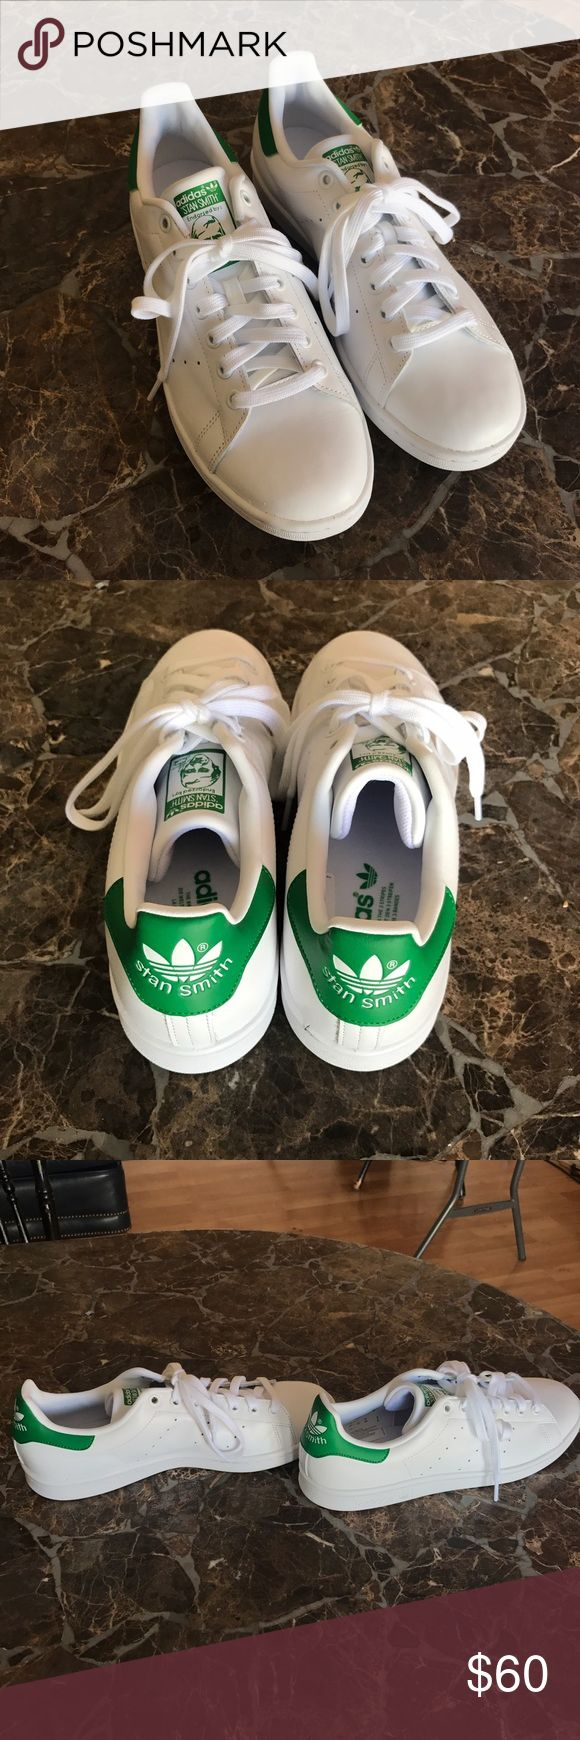 Adidas Stan smiths ❗️✔️ In fantastic condition only worn one time men's! Adidas Shoes Sneakers